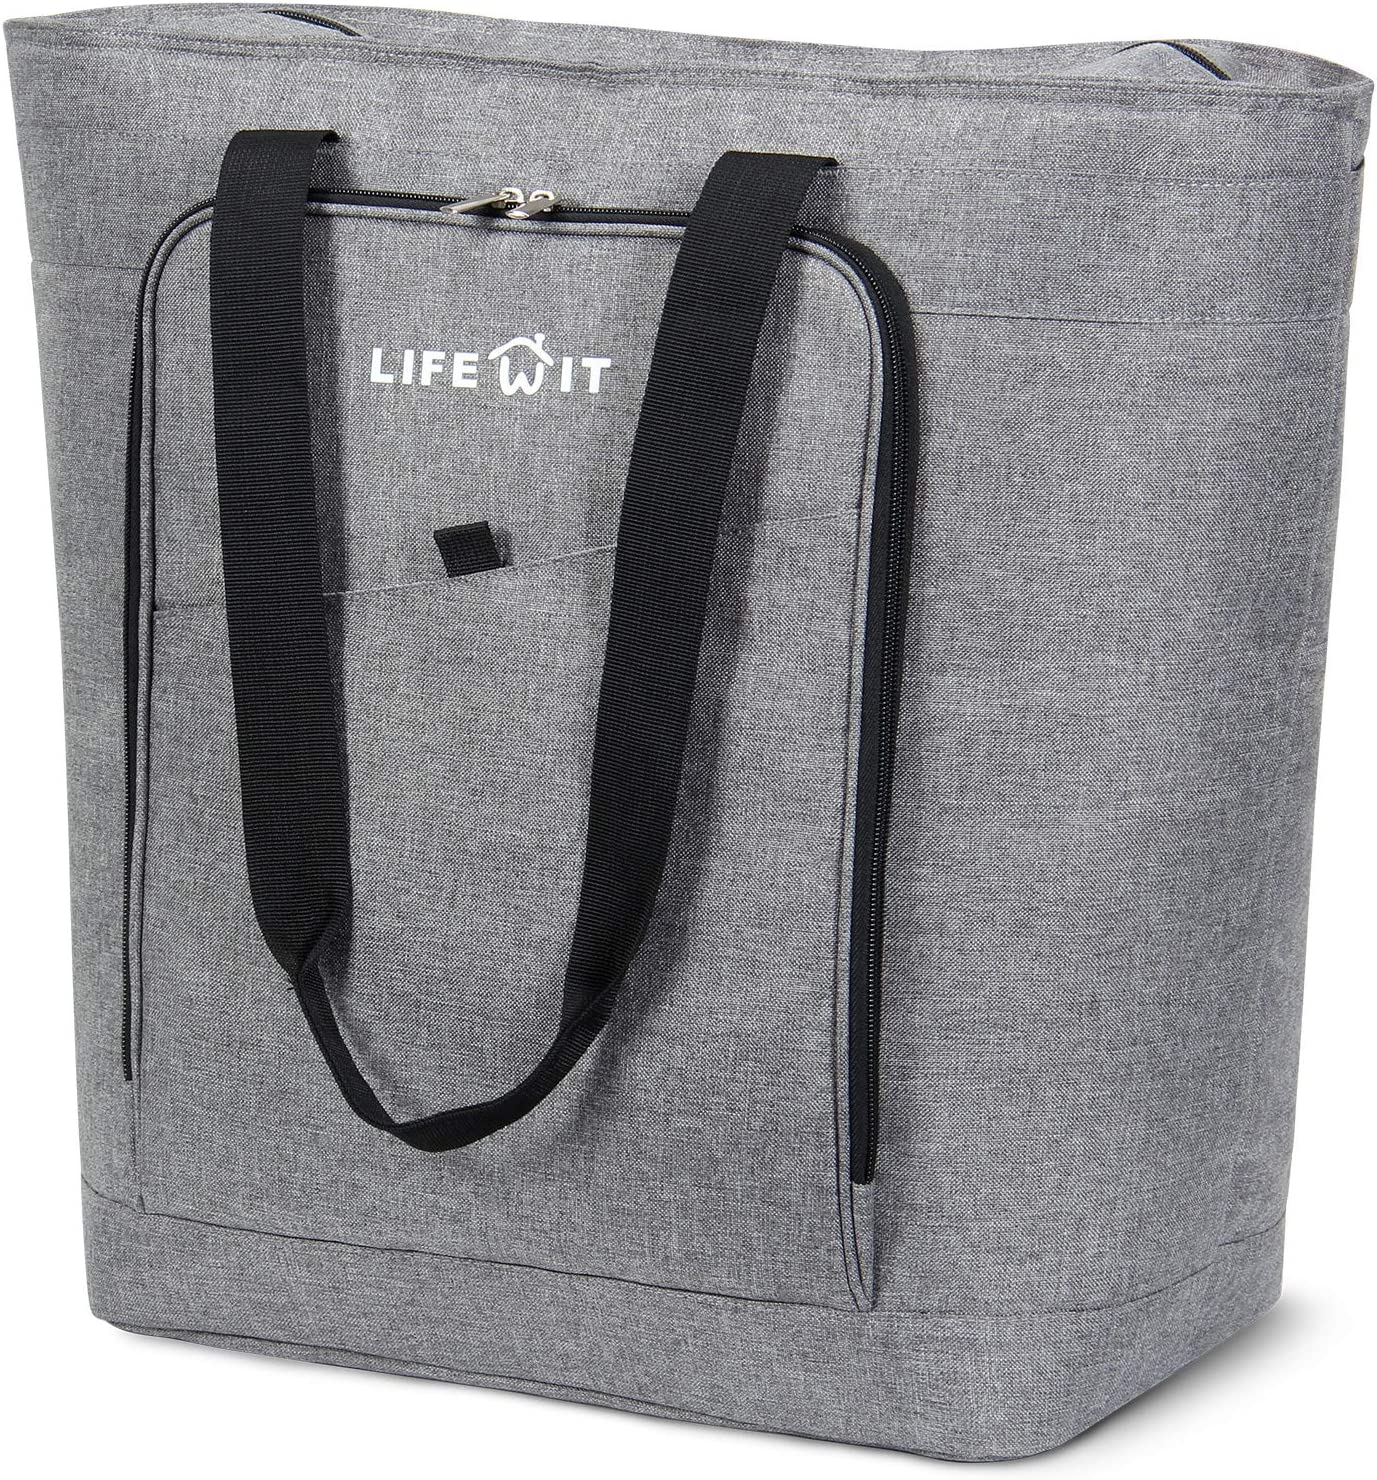 Grey Lifewit Jumbo Reusable Grocery Shopping Bags Foldable Tote Insulated Bag Transport Hot and Cold Food